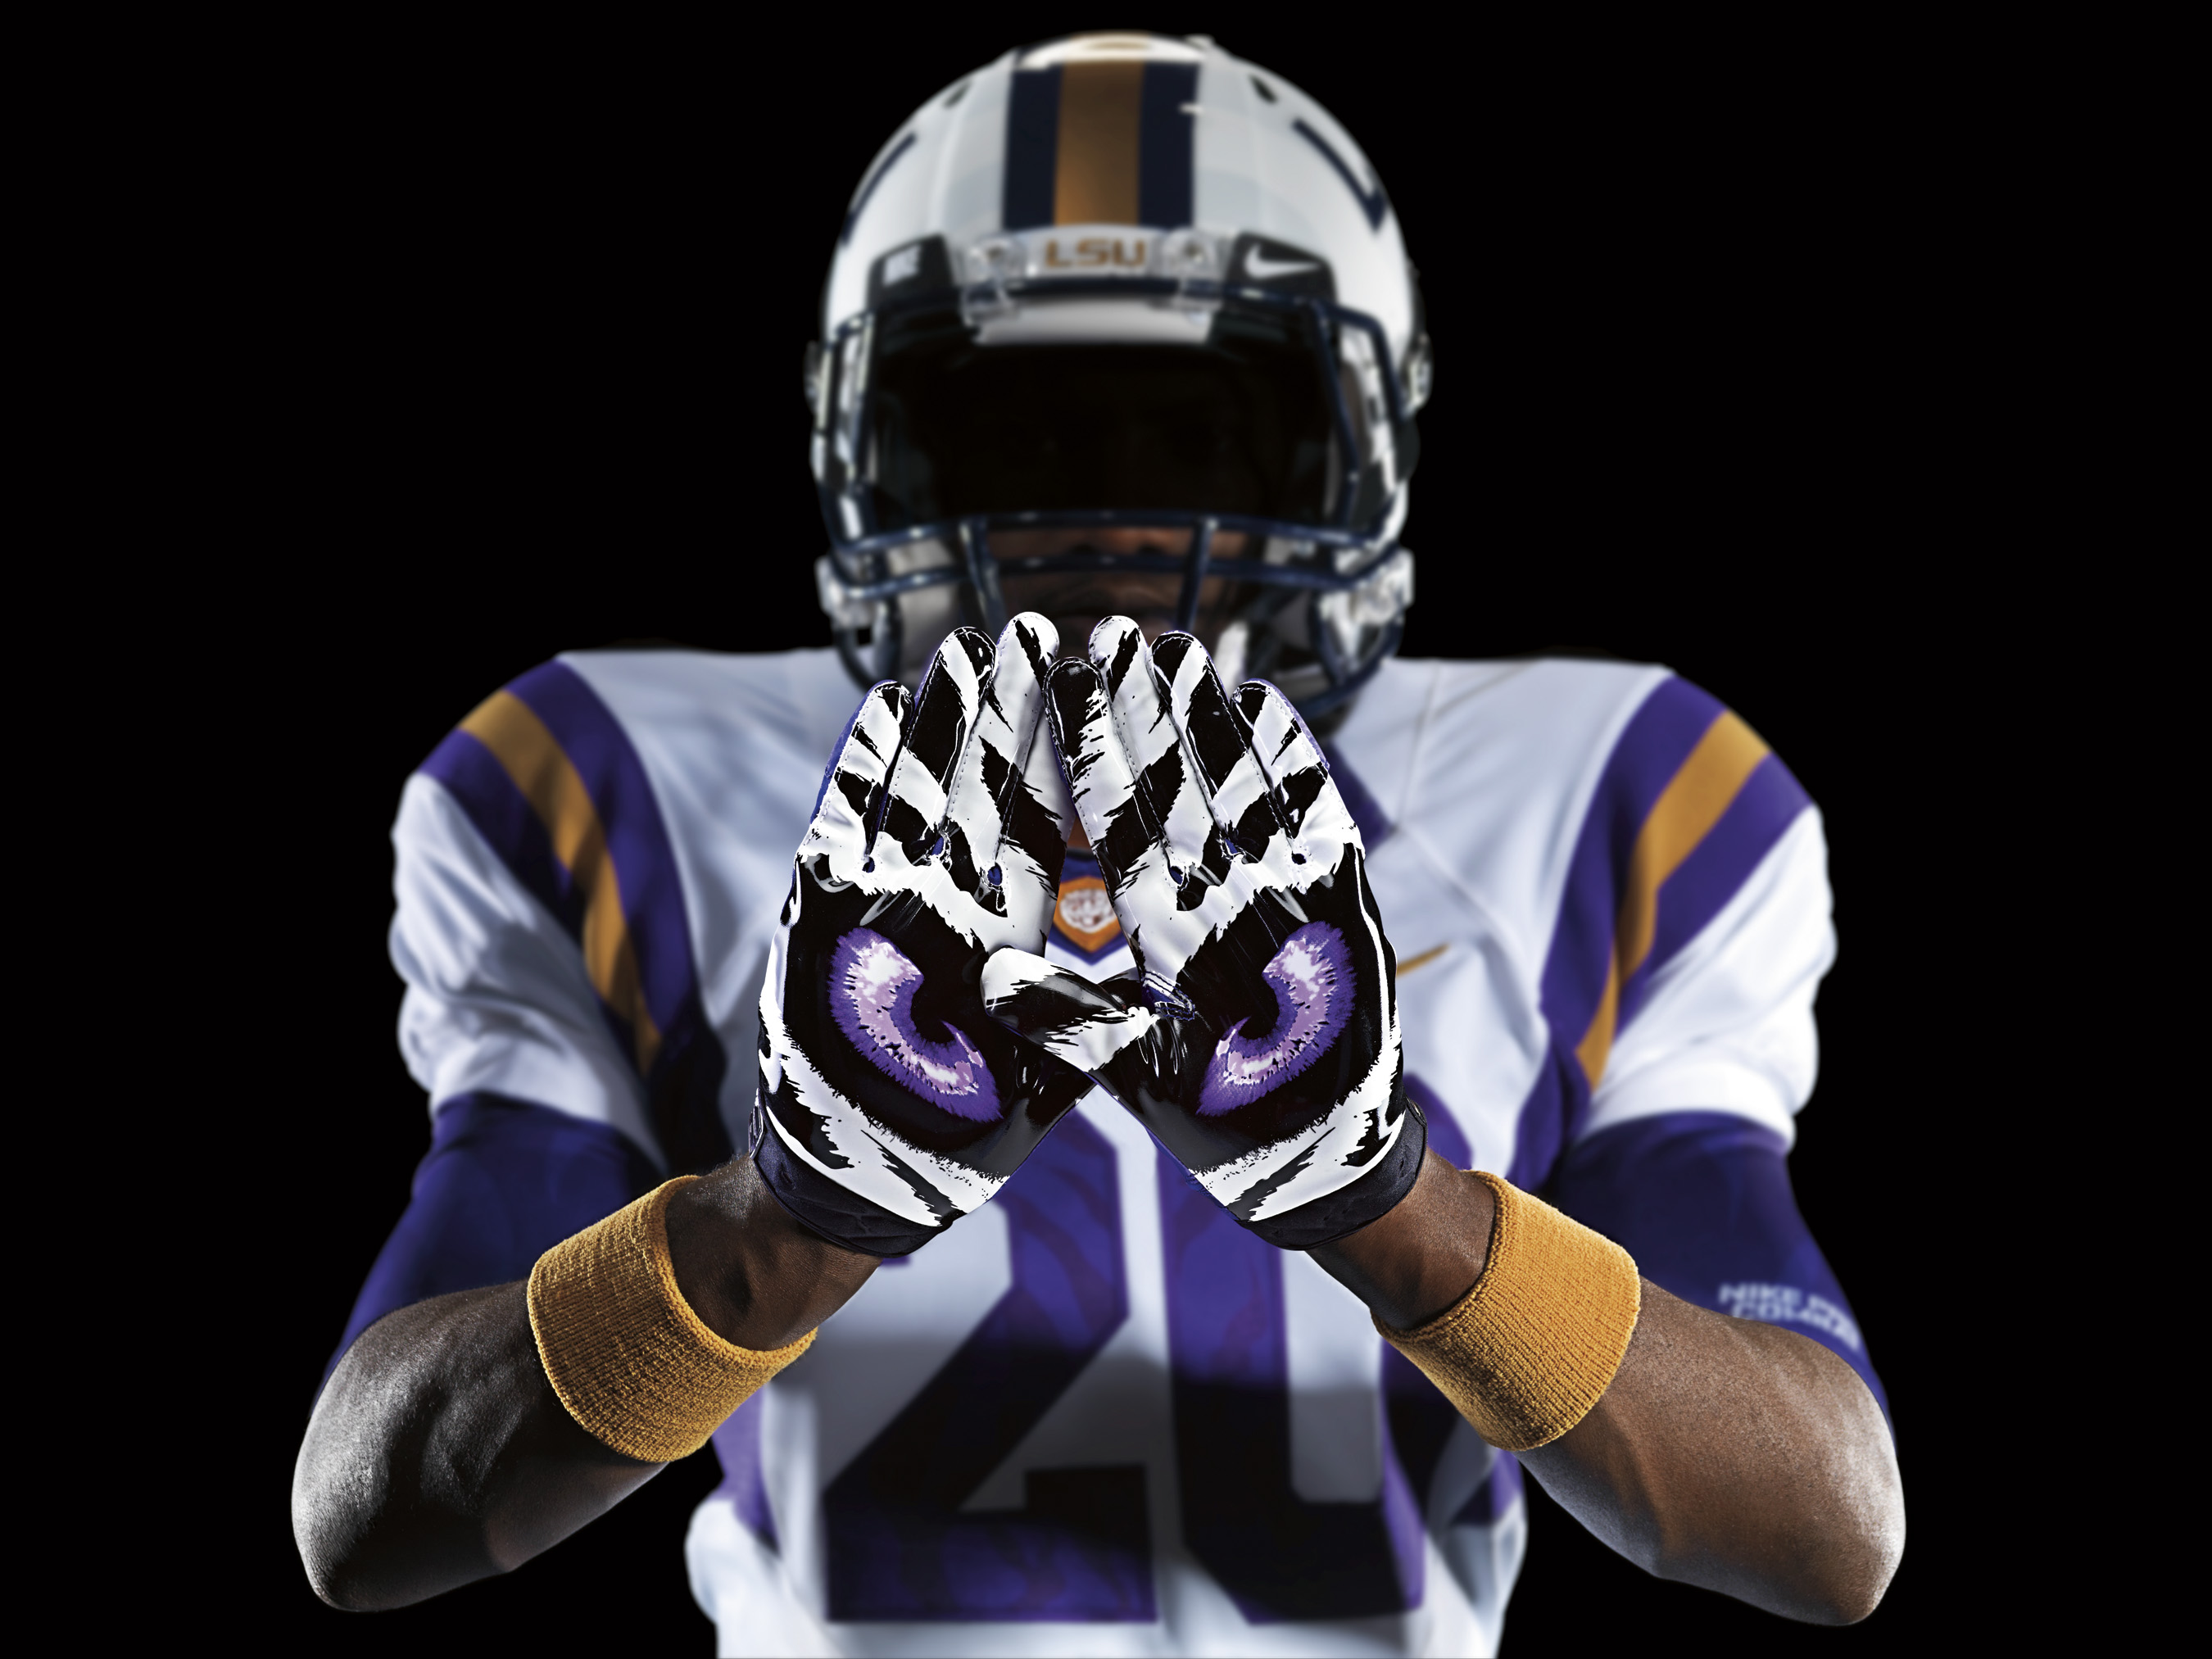 LSU To Get The Nike Pro Combat Treatment [Pictures] 2700x2025